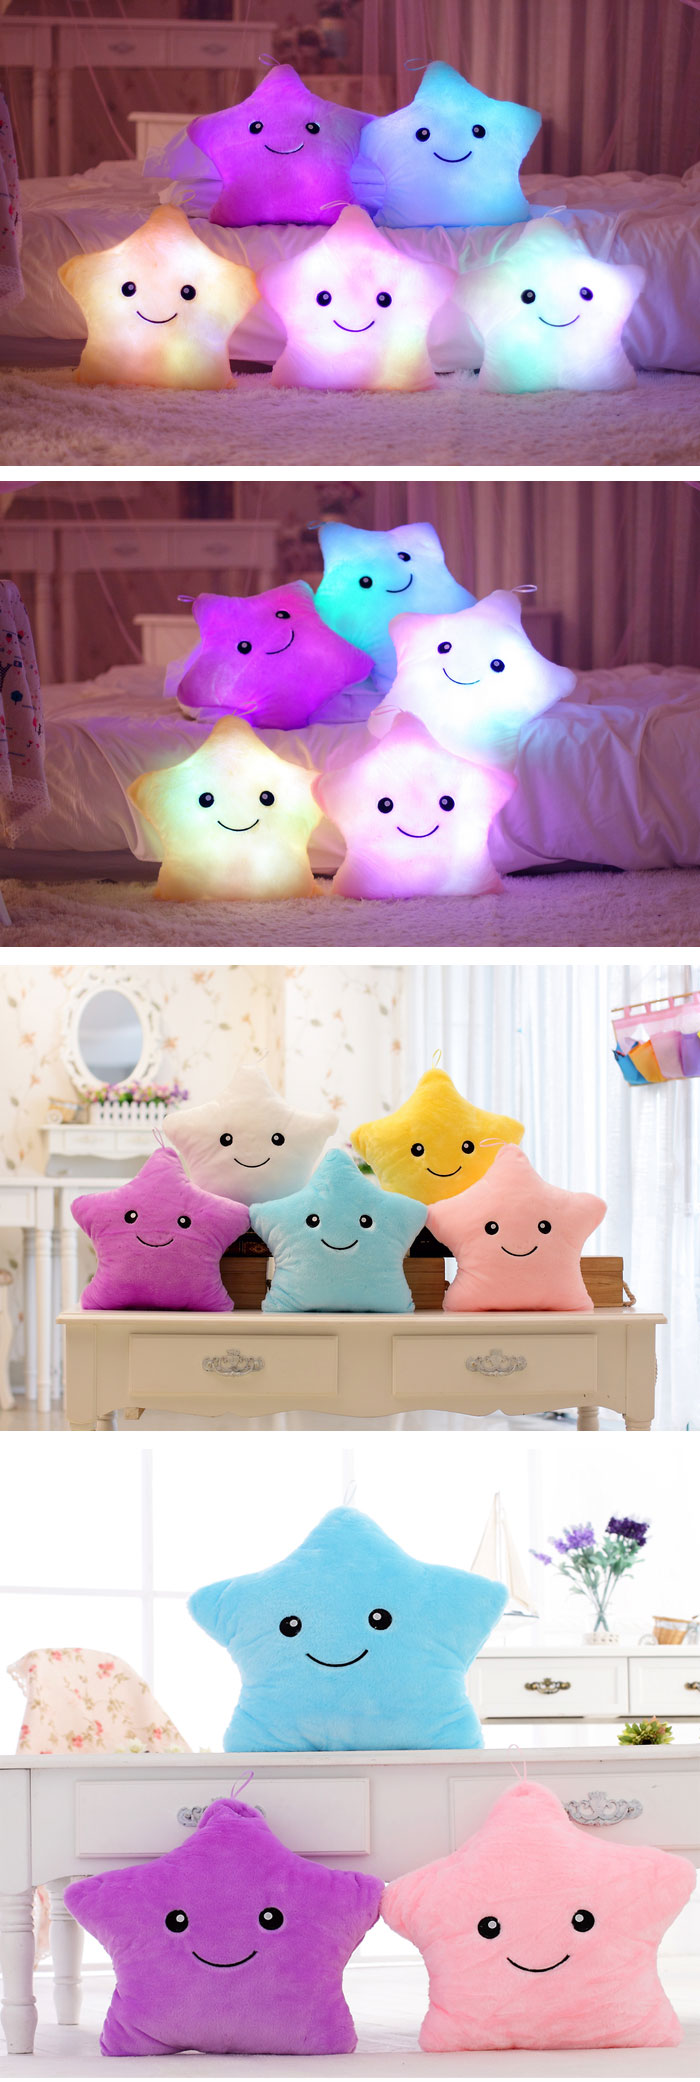 colorful LED star shape throw pillow